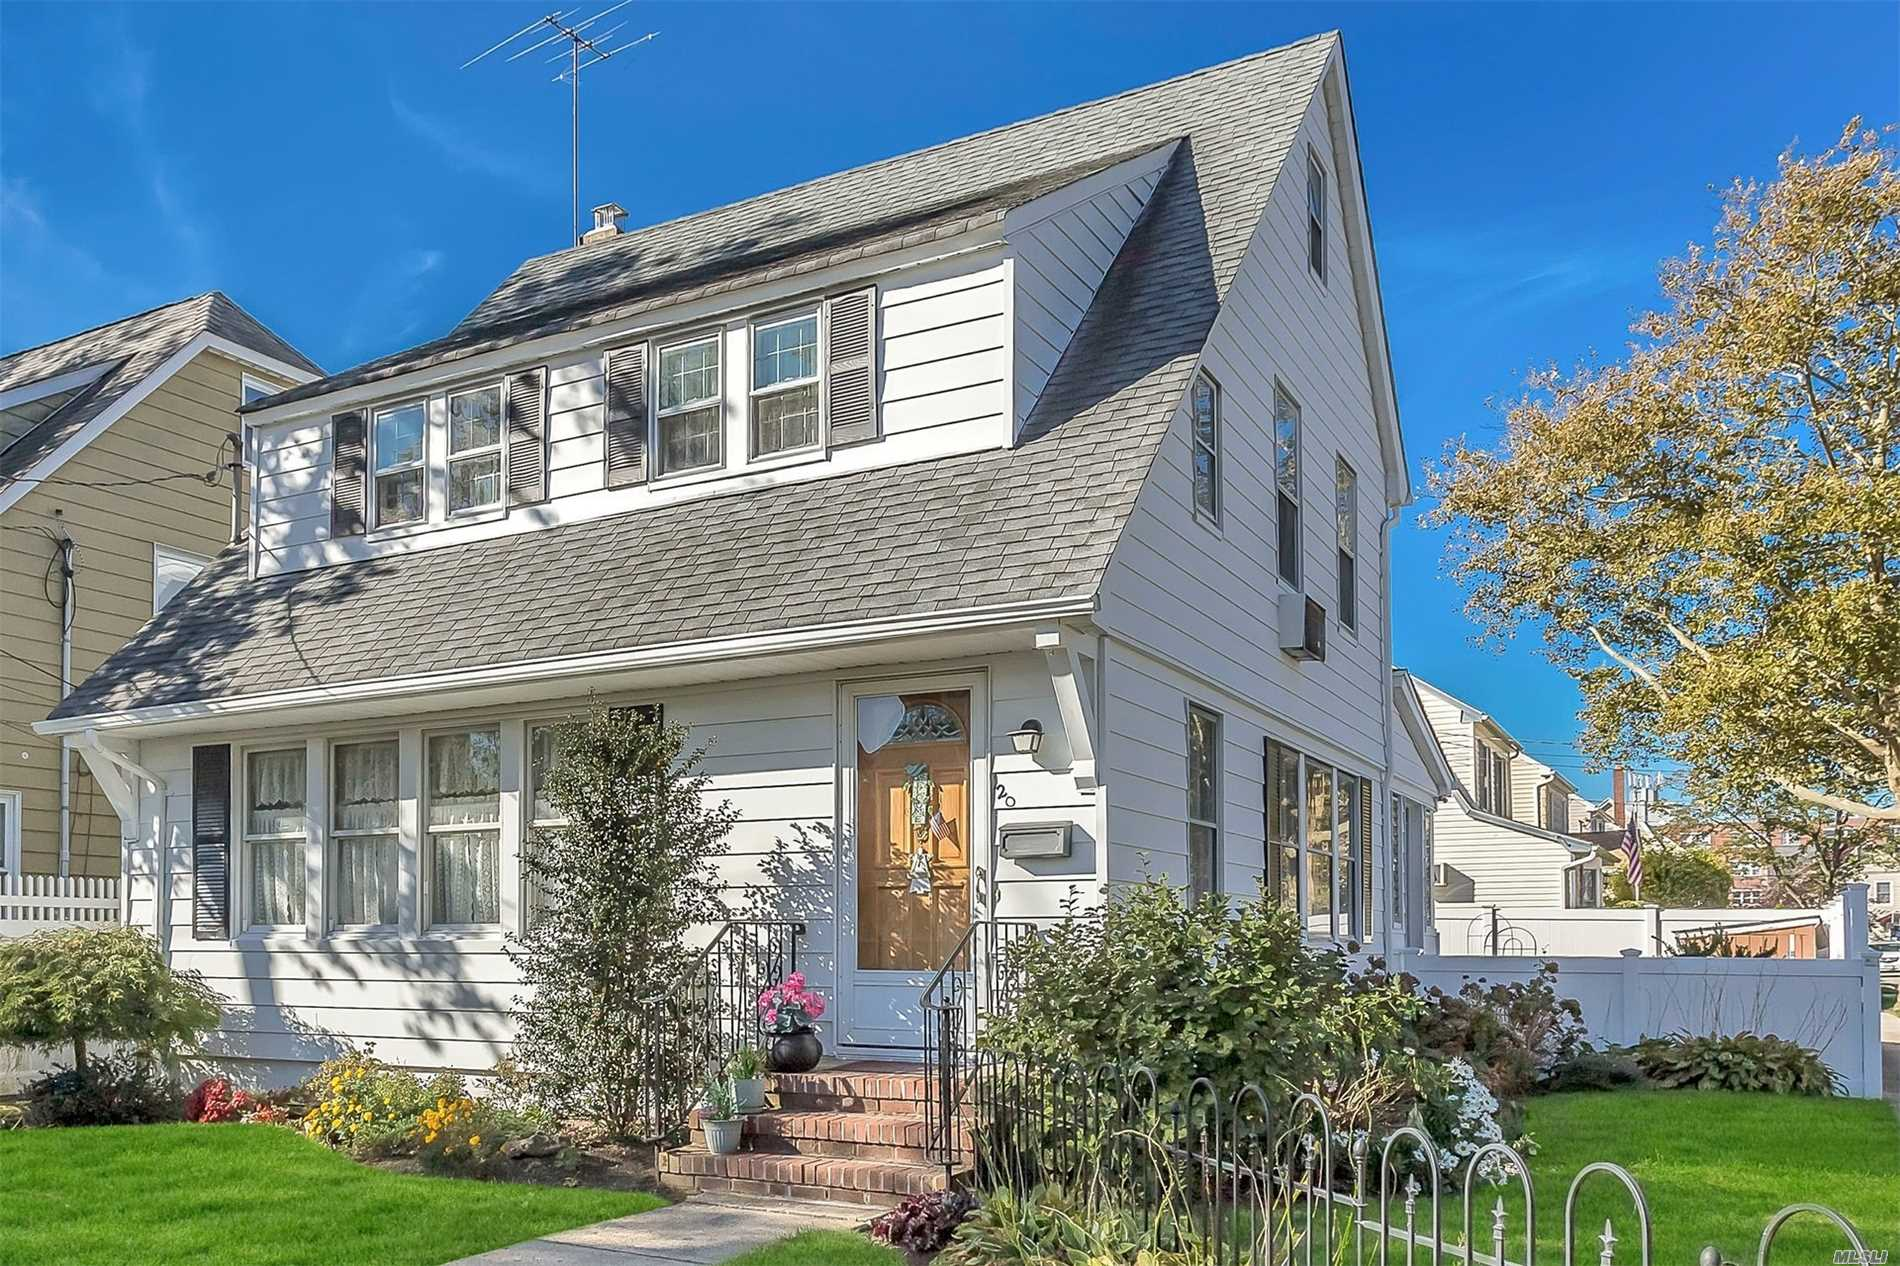 Filled With Charm,  3 Bedroom, 2 Bath, 2 Car Garage, Basement Colonial In Prime College Section. Nice Corner Property .Centrally Located To Community Pool & Park, Rail, Highways, Shopping. Hardwood Floors, Roof 6Yrs, Newer Gas Heating. Hurry, Don't Miss!